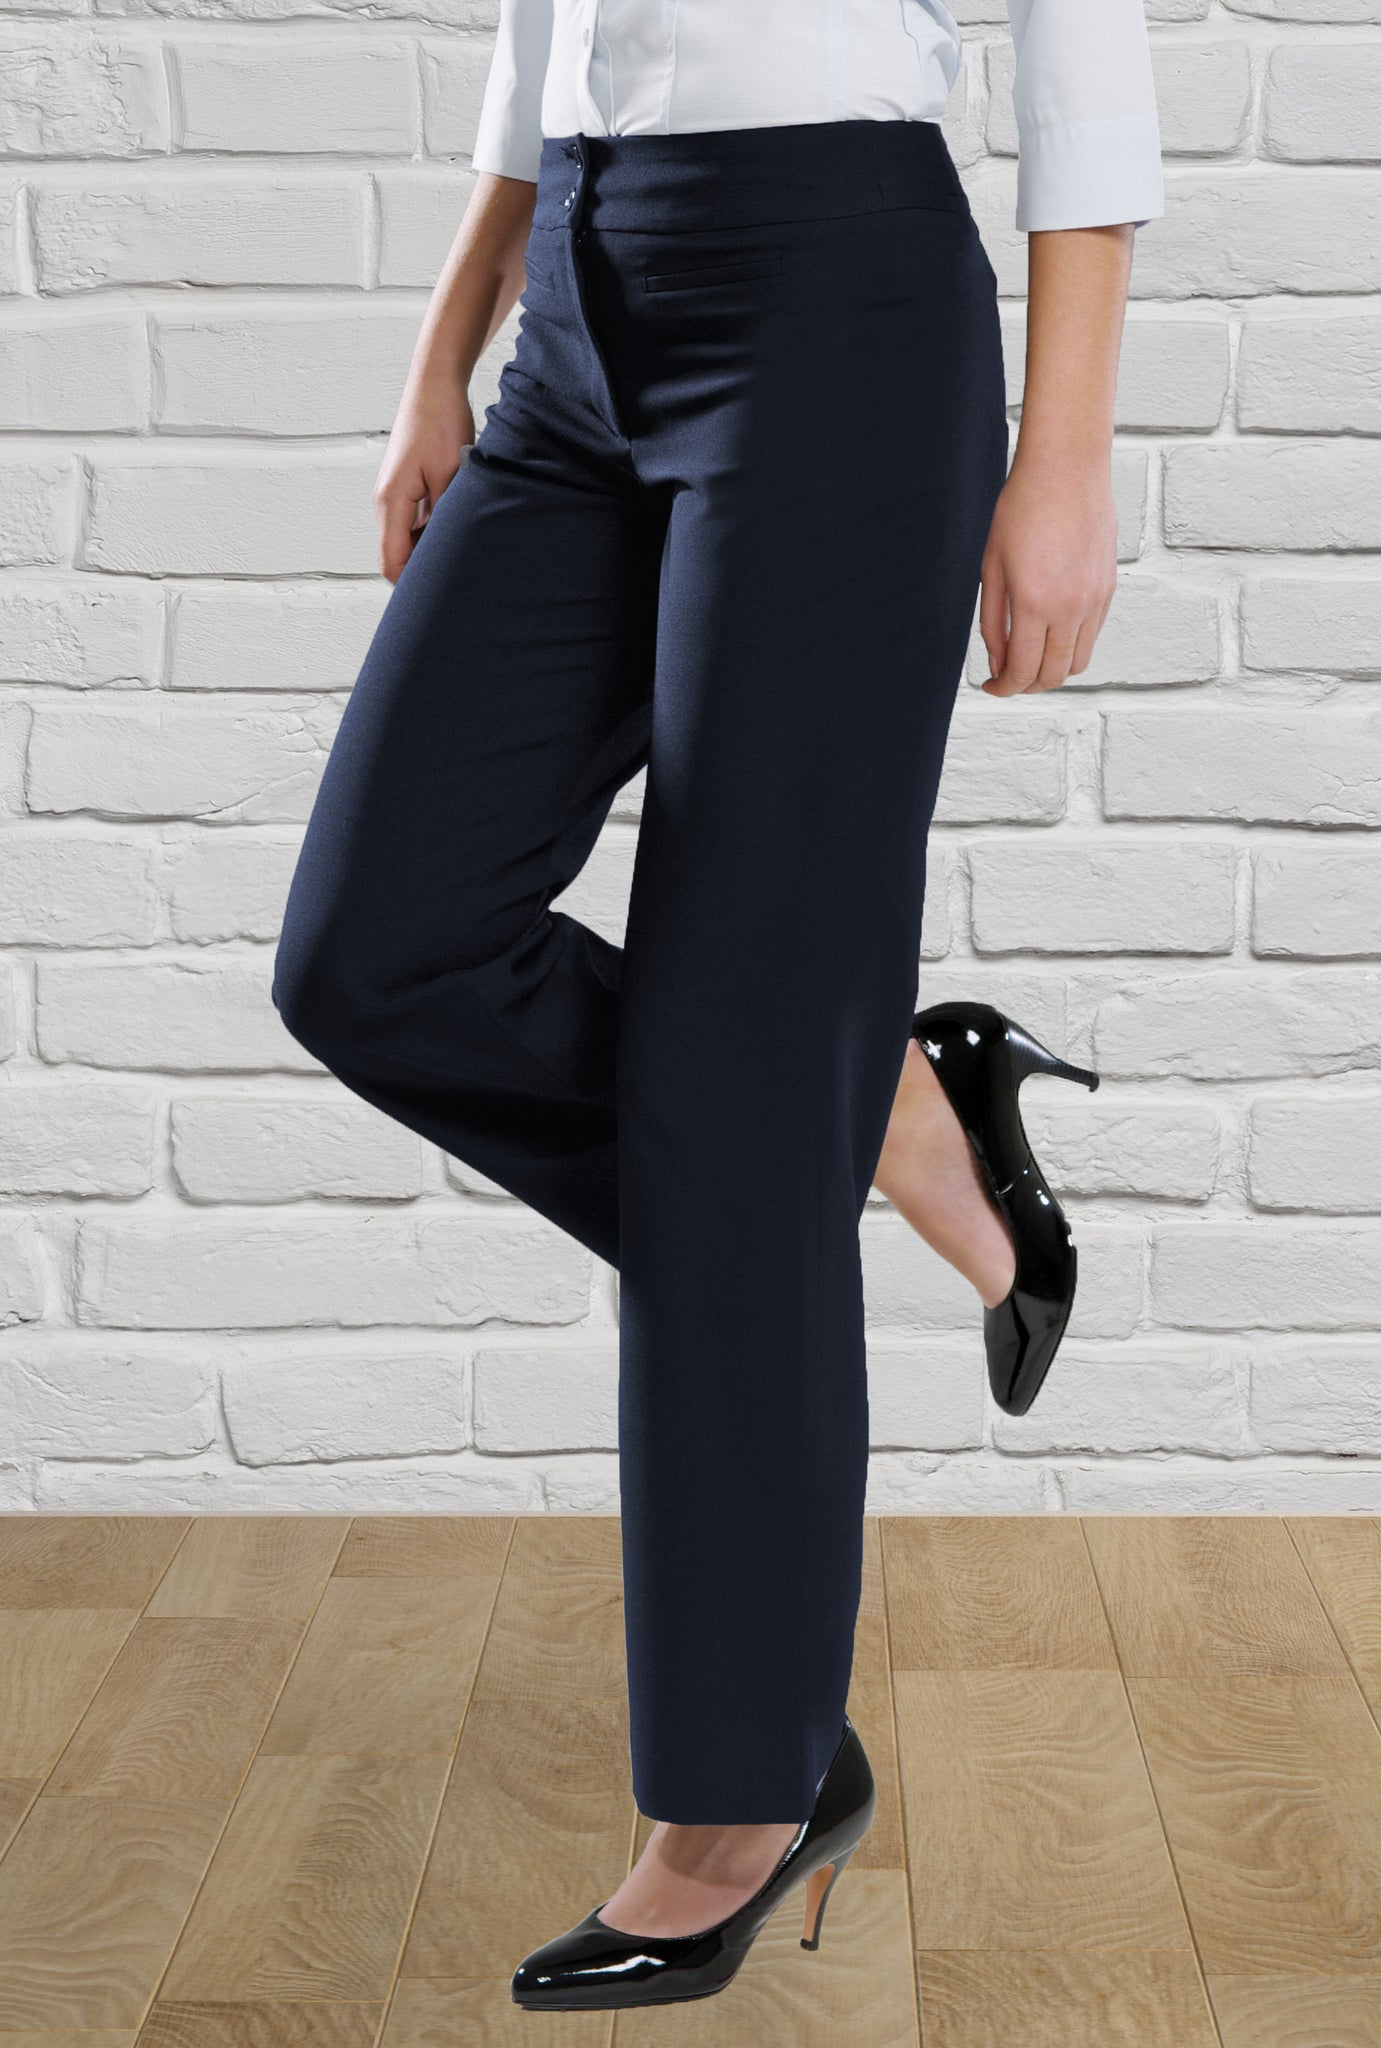 Ladies 'Chloe' Navy Trouser